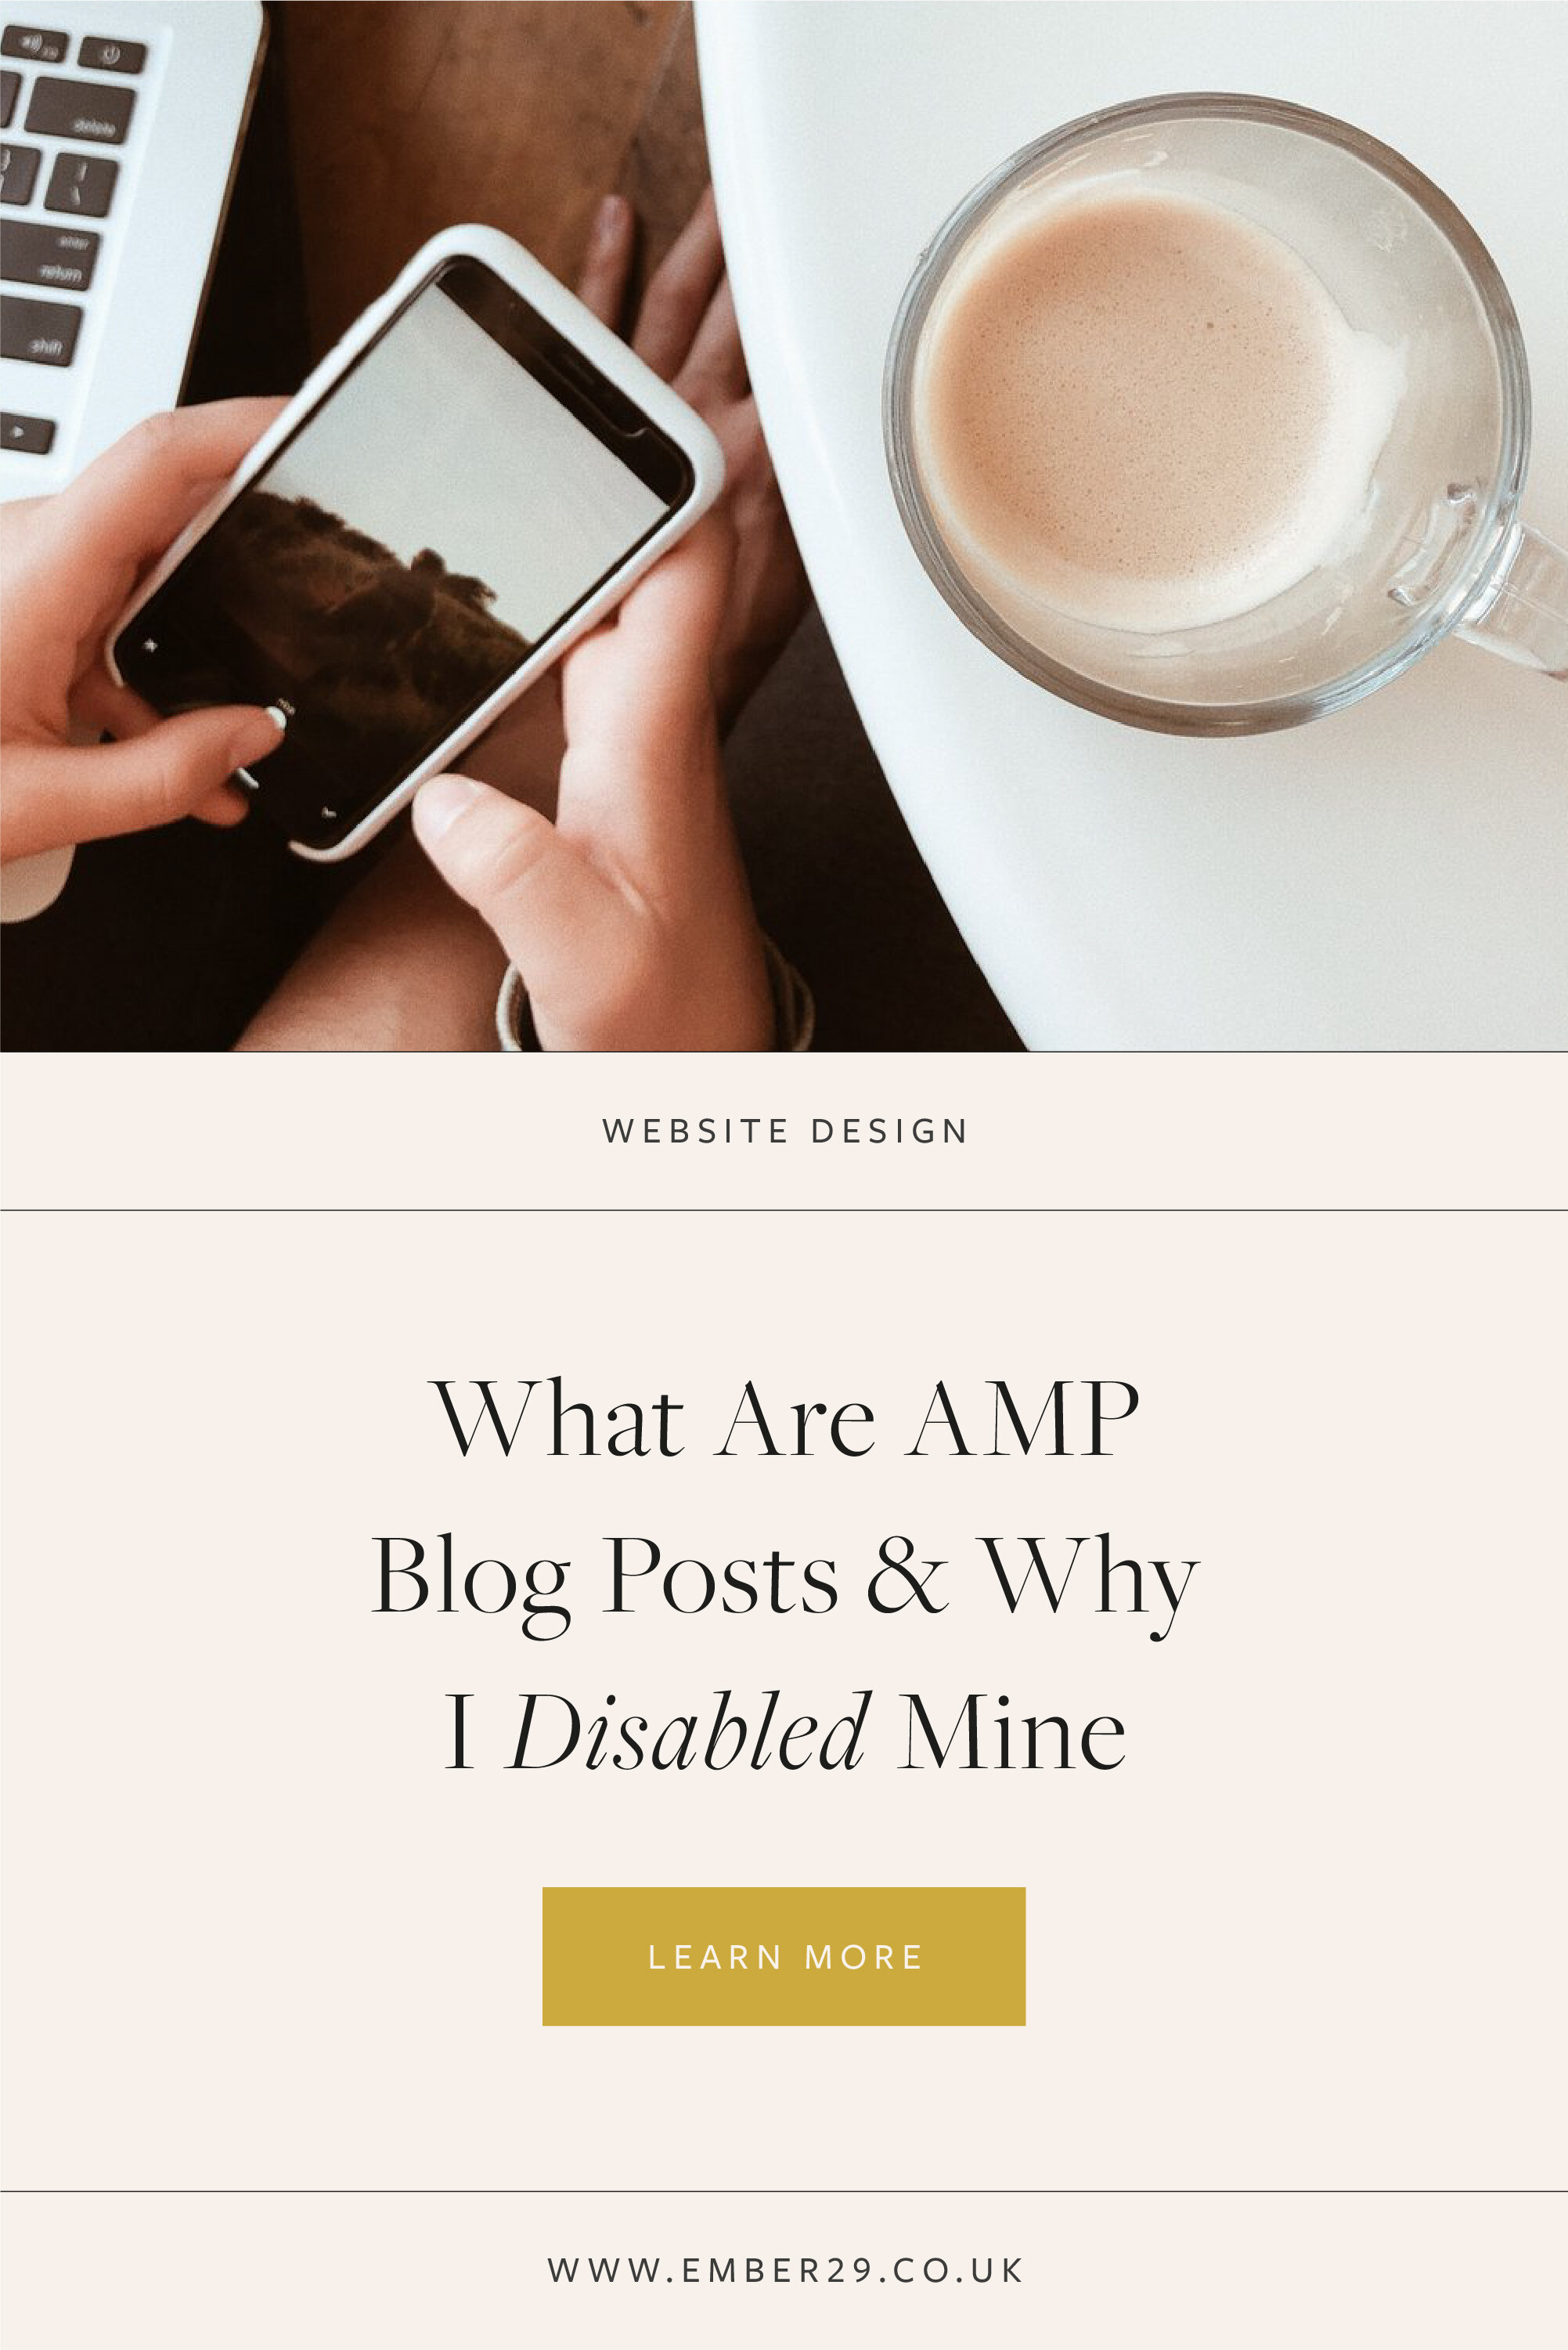 What are AMP Blog Posts & Why I Disabled Mine